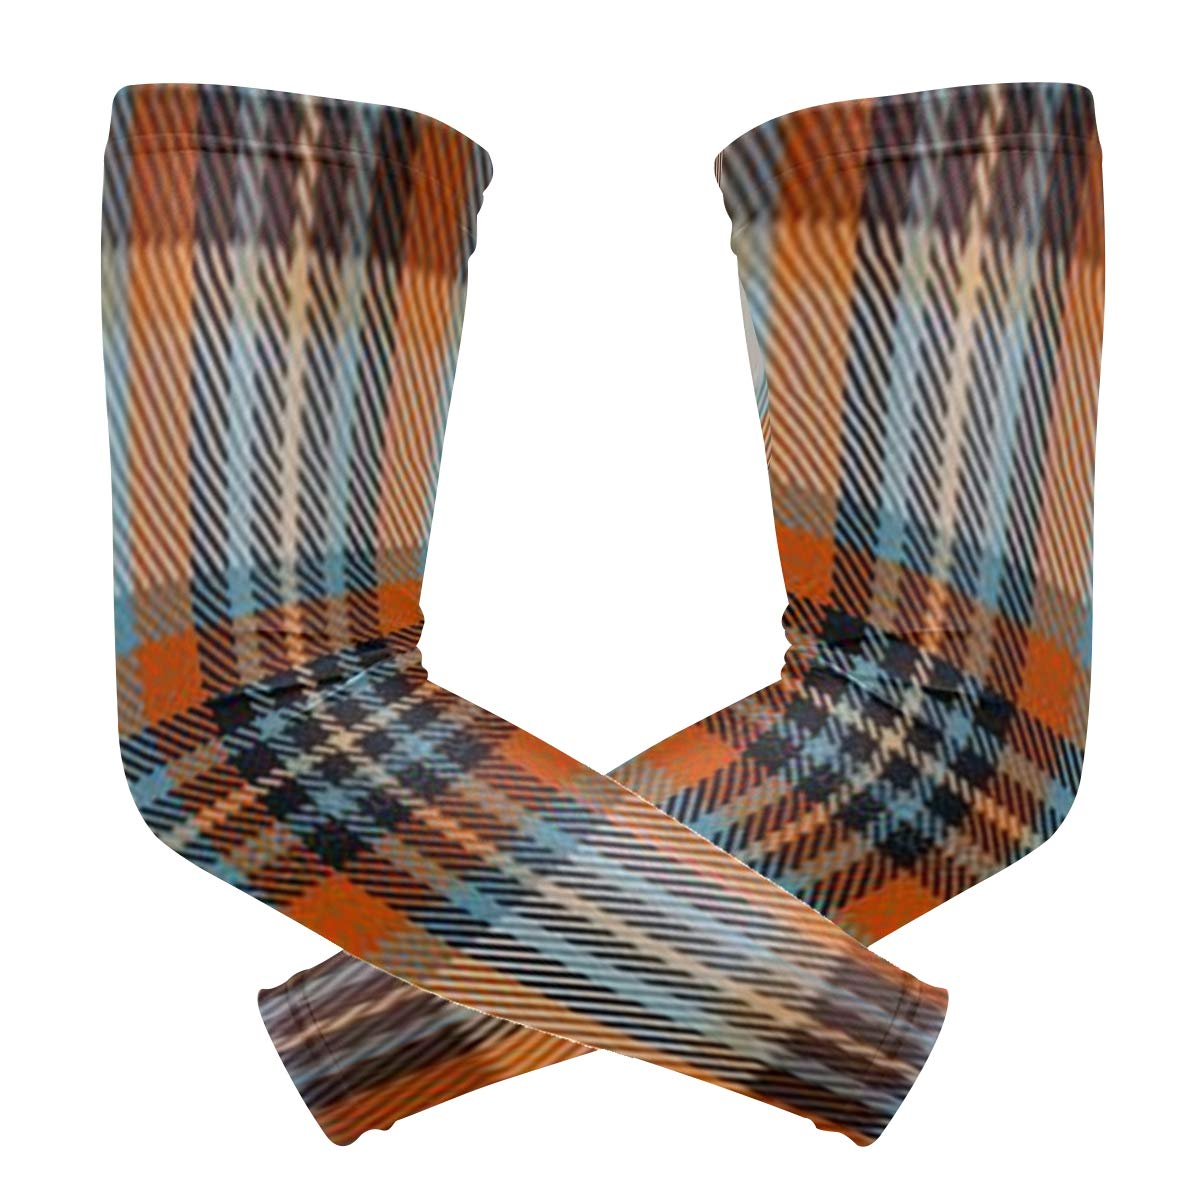 Arm Sleeves Colorful Plaid Mens Sun UV Protection Sleeves Arm Warmers Cool Long Set Covers